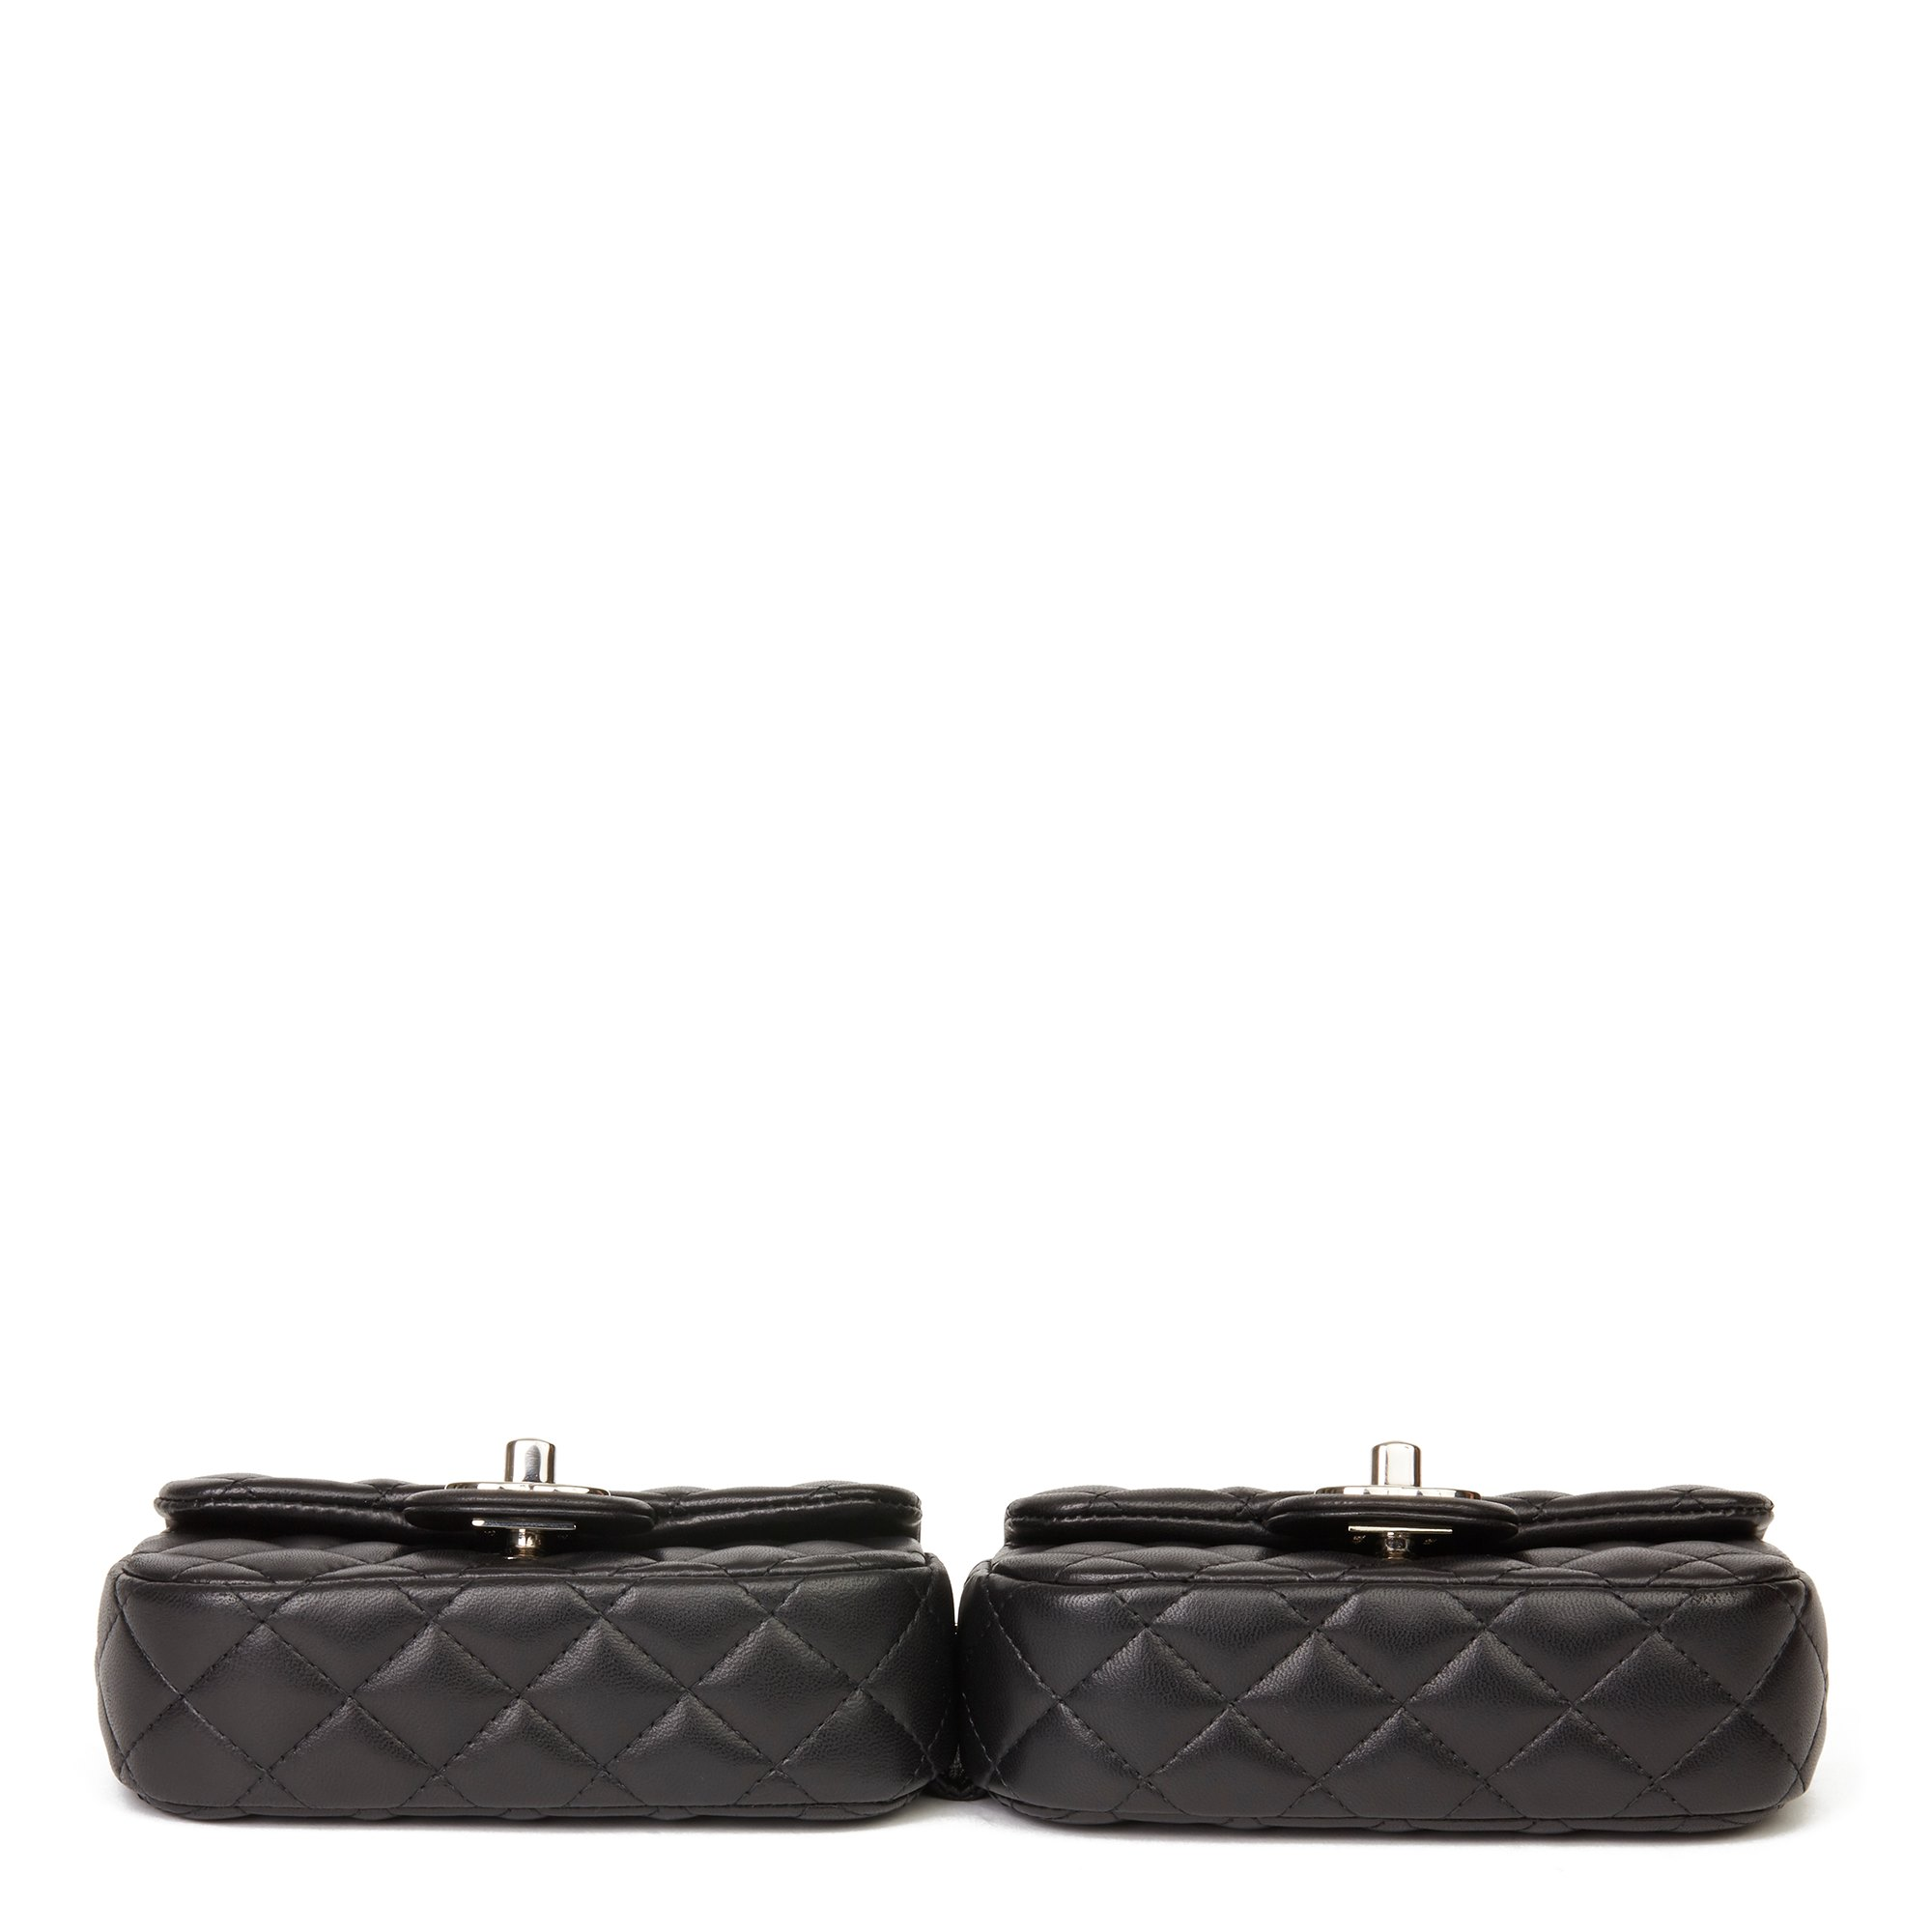 Chanel Black Quilted Lambskin Double Mini Flap Bag